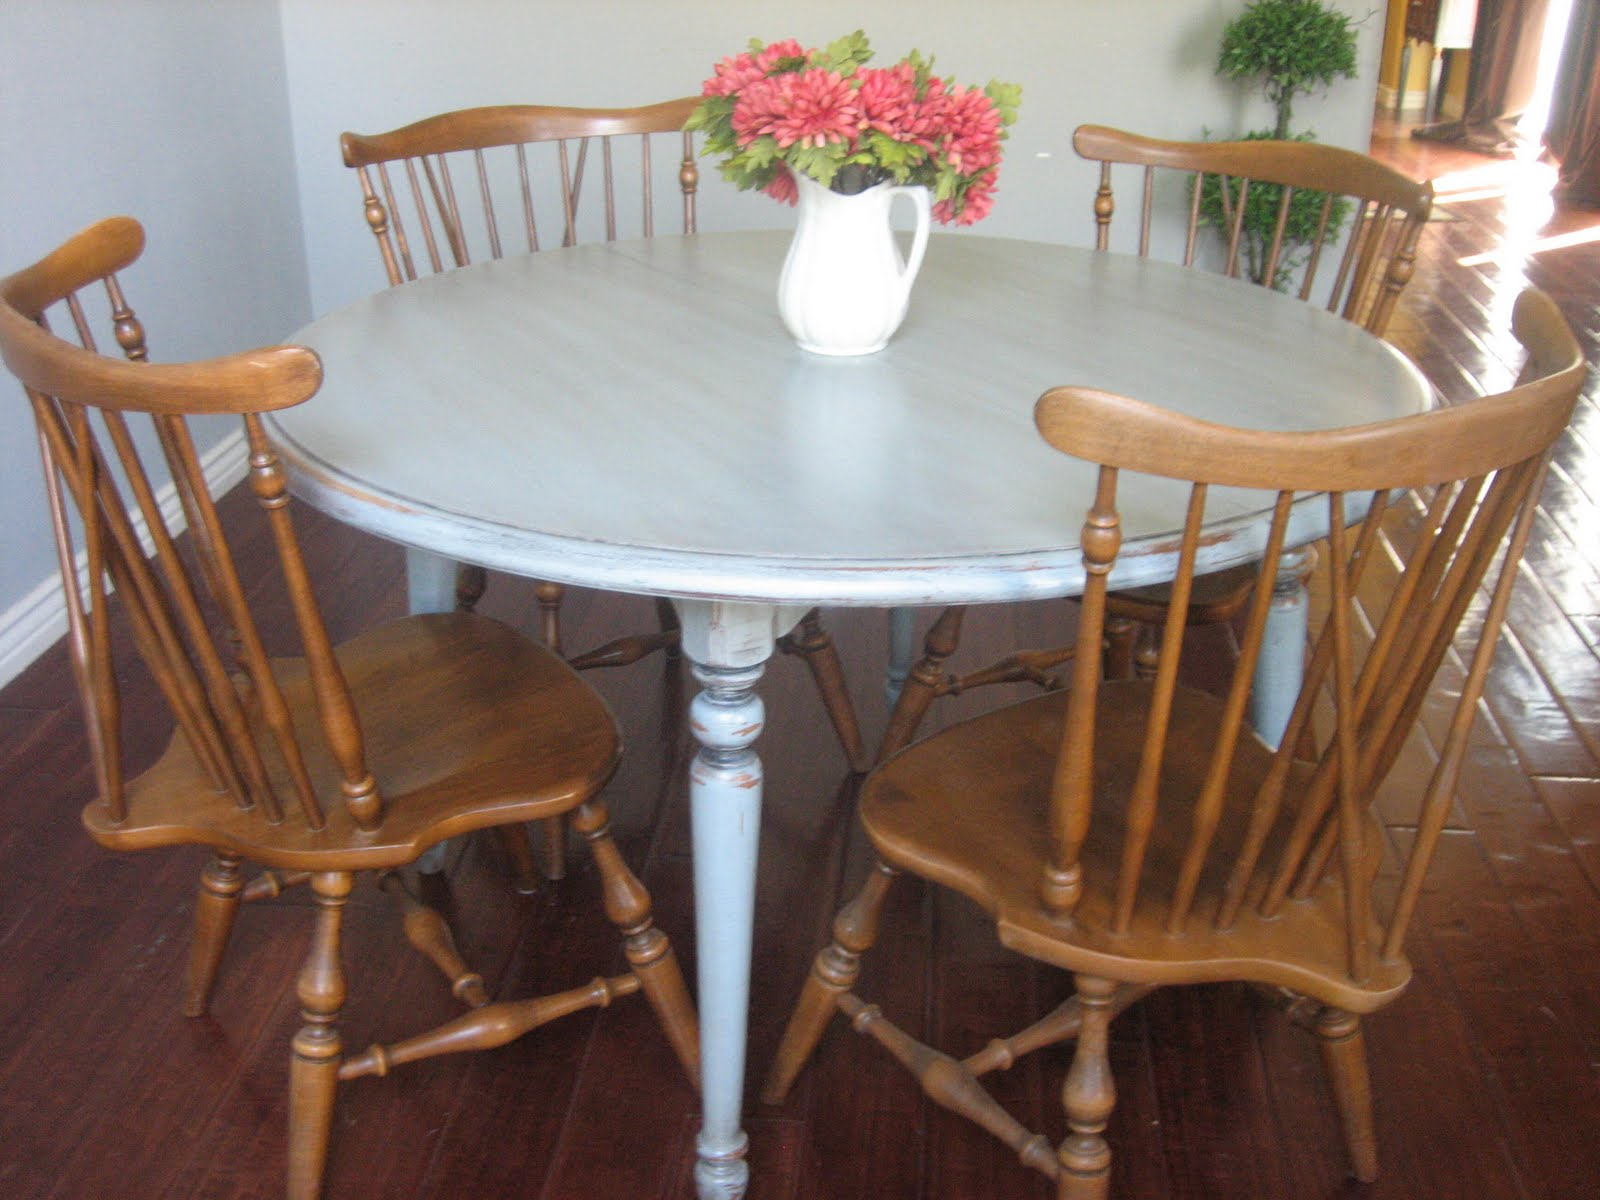 ... Ethan Allen Dining Room Tables Round By European Paint Finishes Ethan  Allen Table Amp Chairs ...